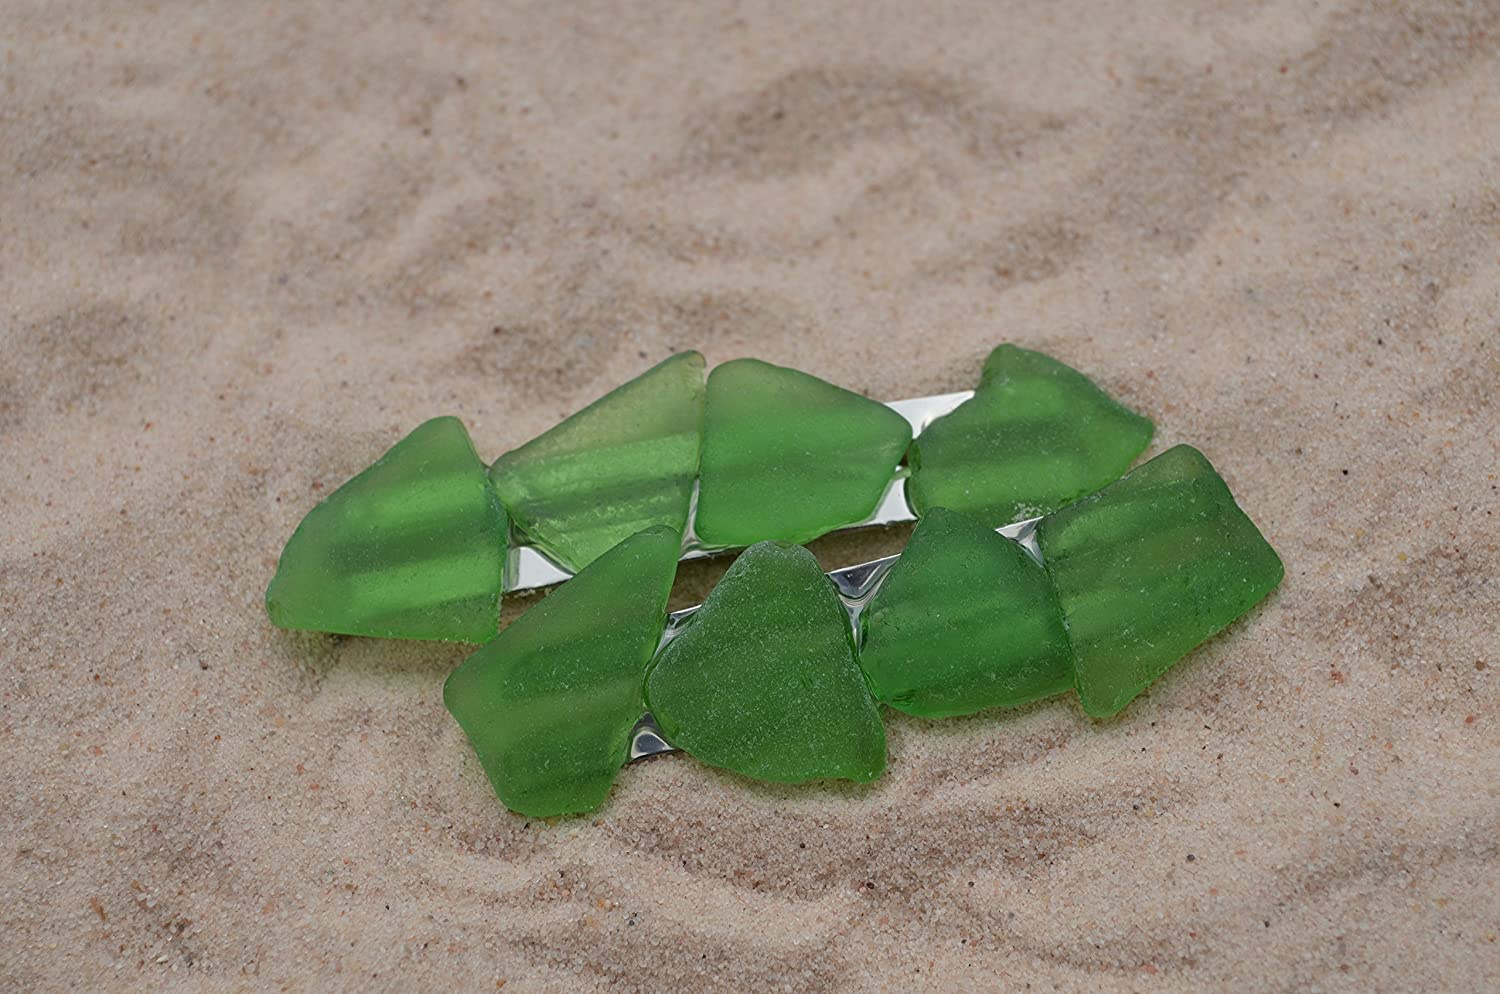 Amazon.com : Genuine Kelly Green Sea Glass Hair Clips (set of 2) : Beauty